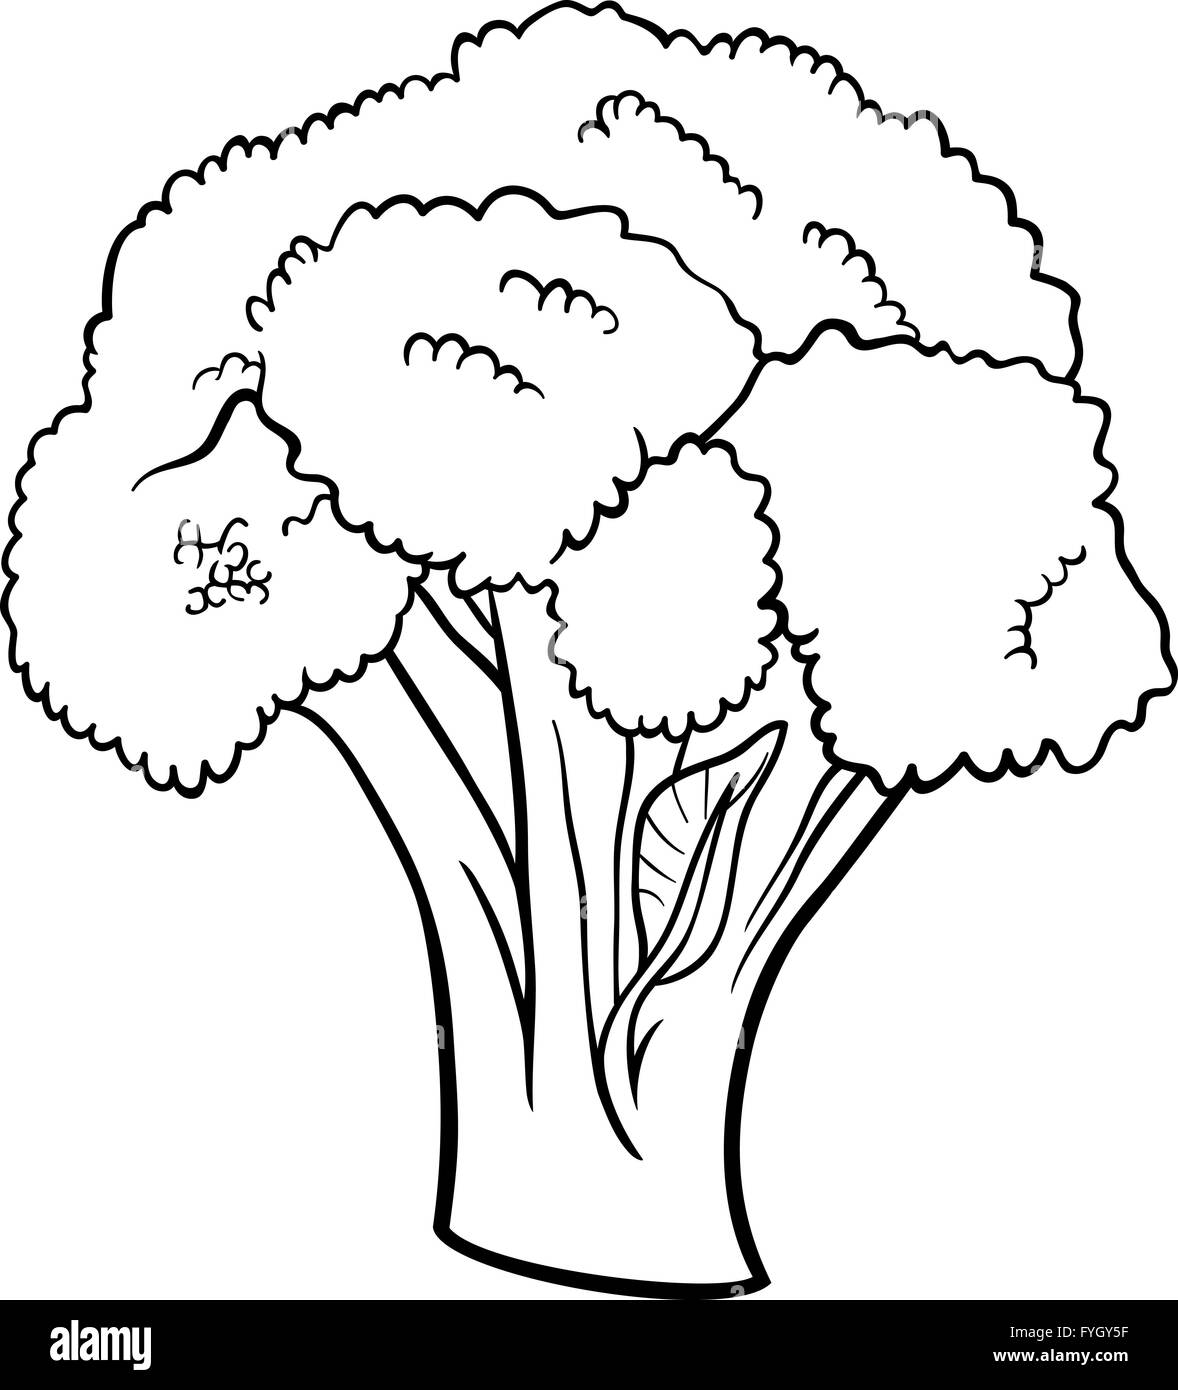 broccoli vegetable cartoon for coloring book Stock Photo: 103020107 ...